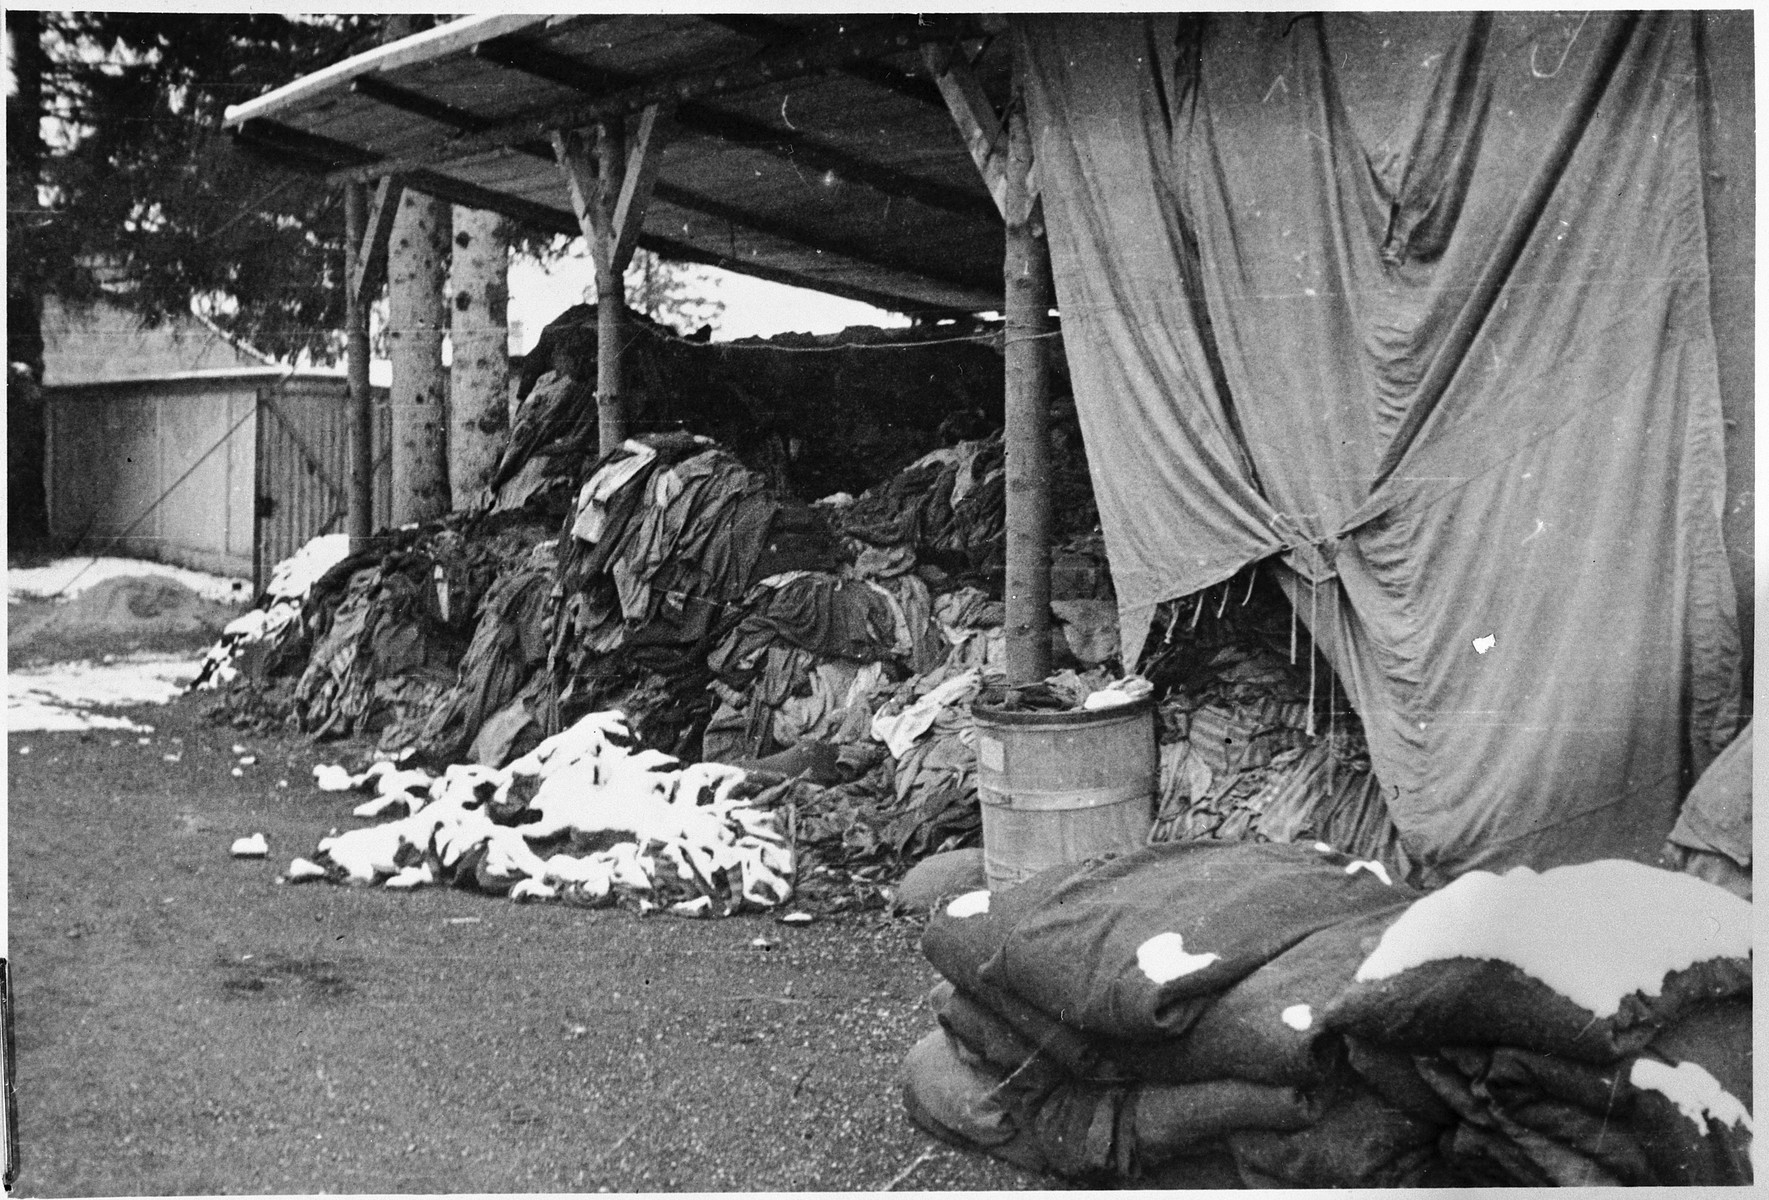 View of clothing piled in an open shed in the Dachau concentration camp.